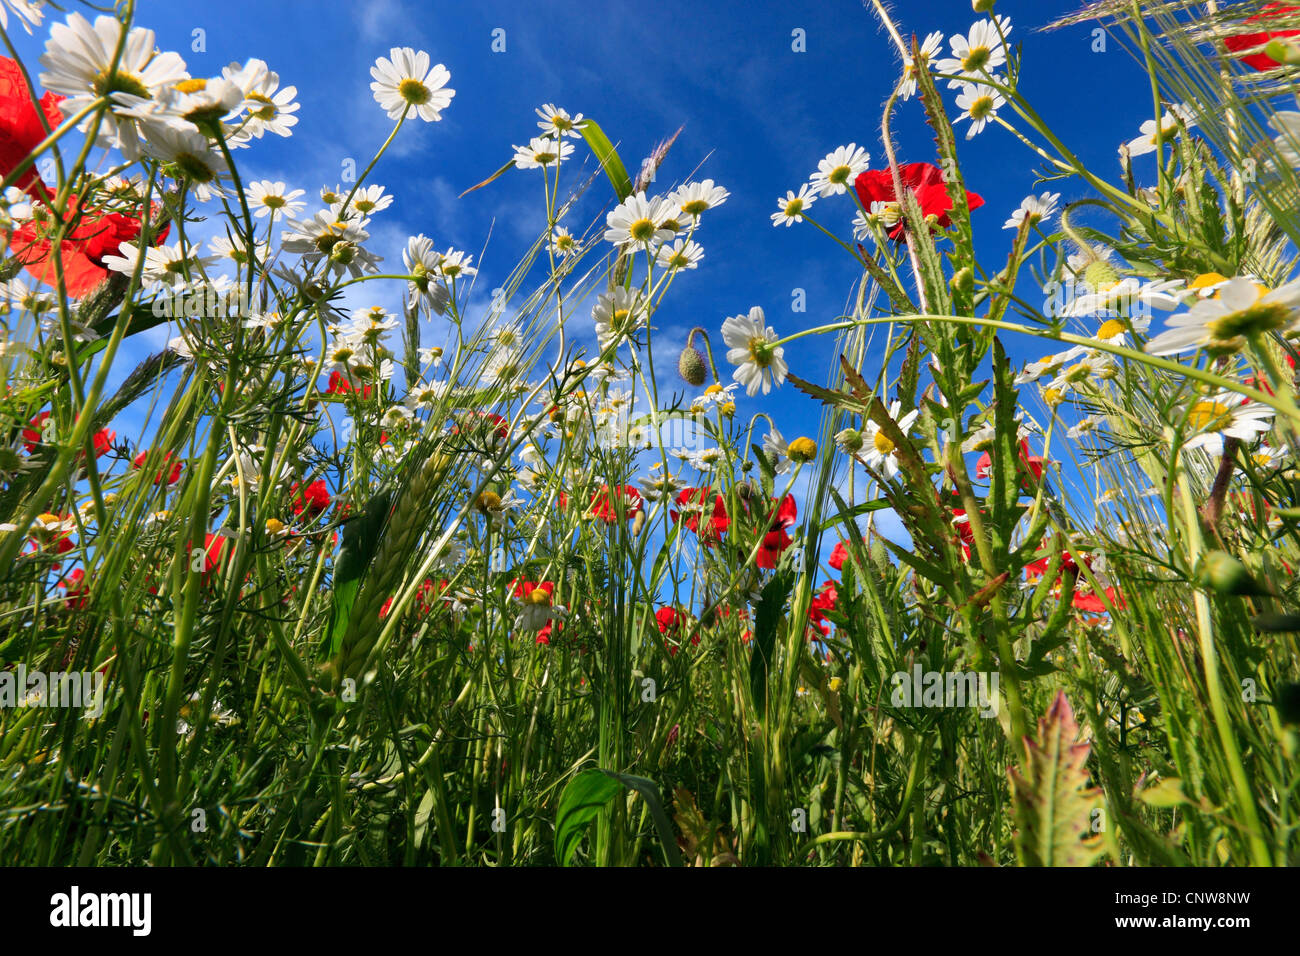 weeds at the border of a barley field, Germany - Stock Image